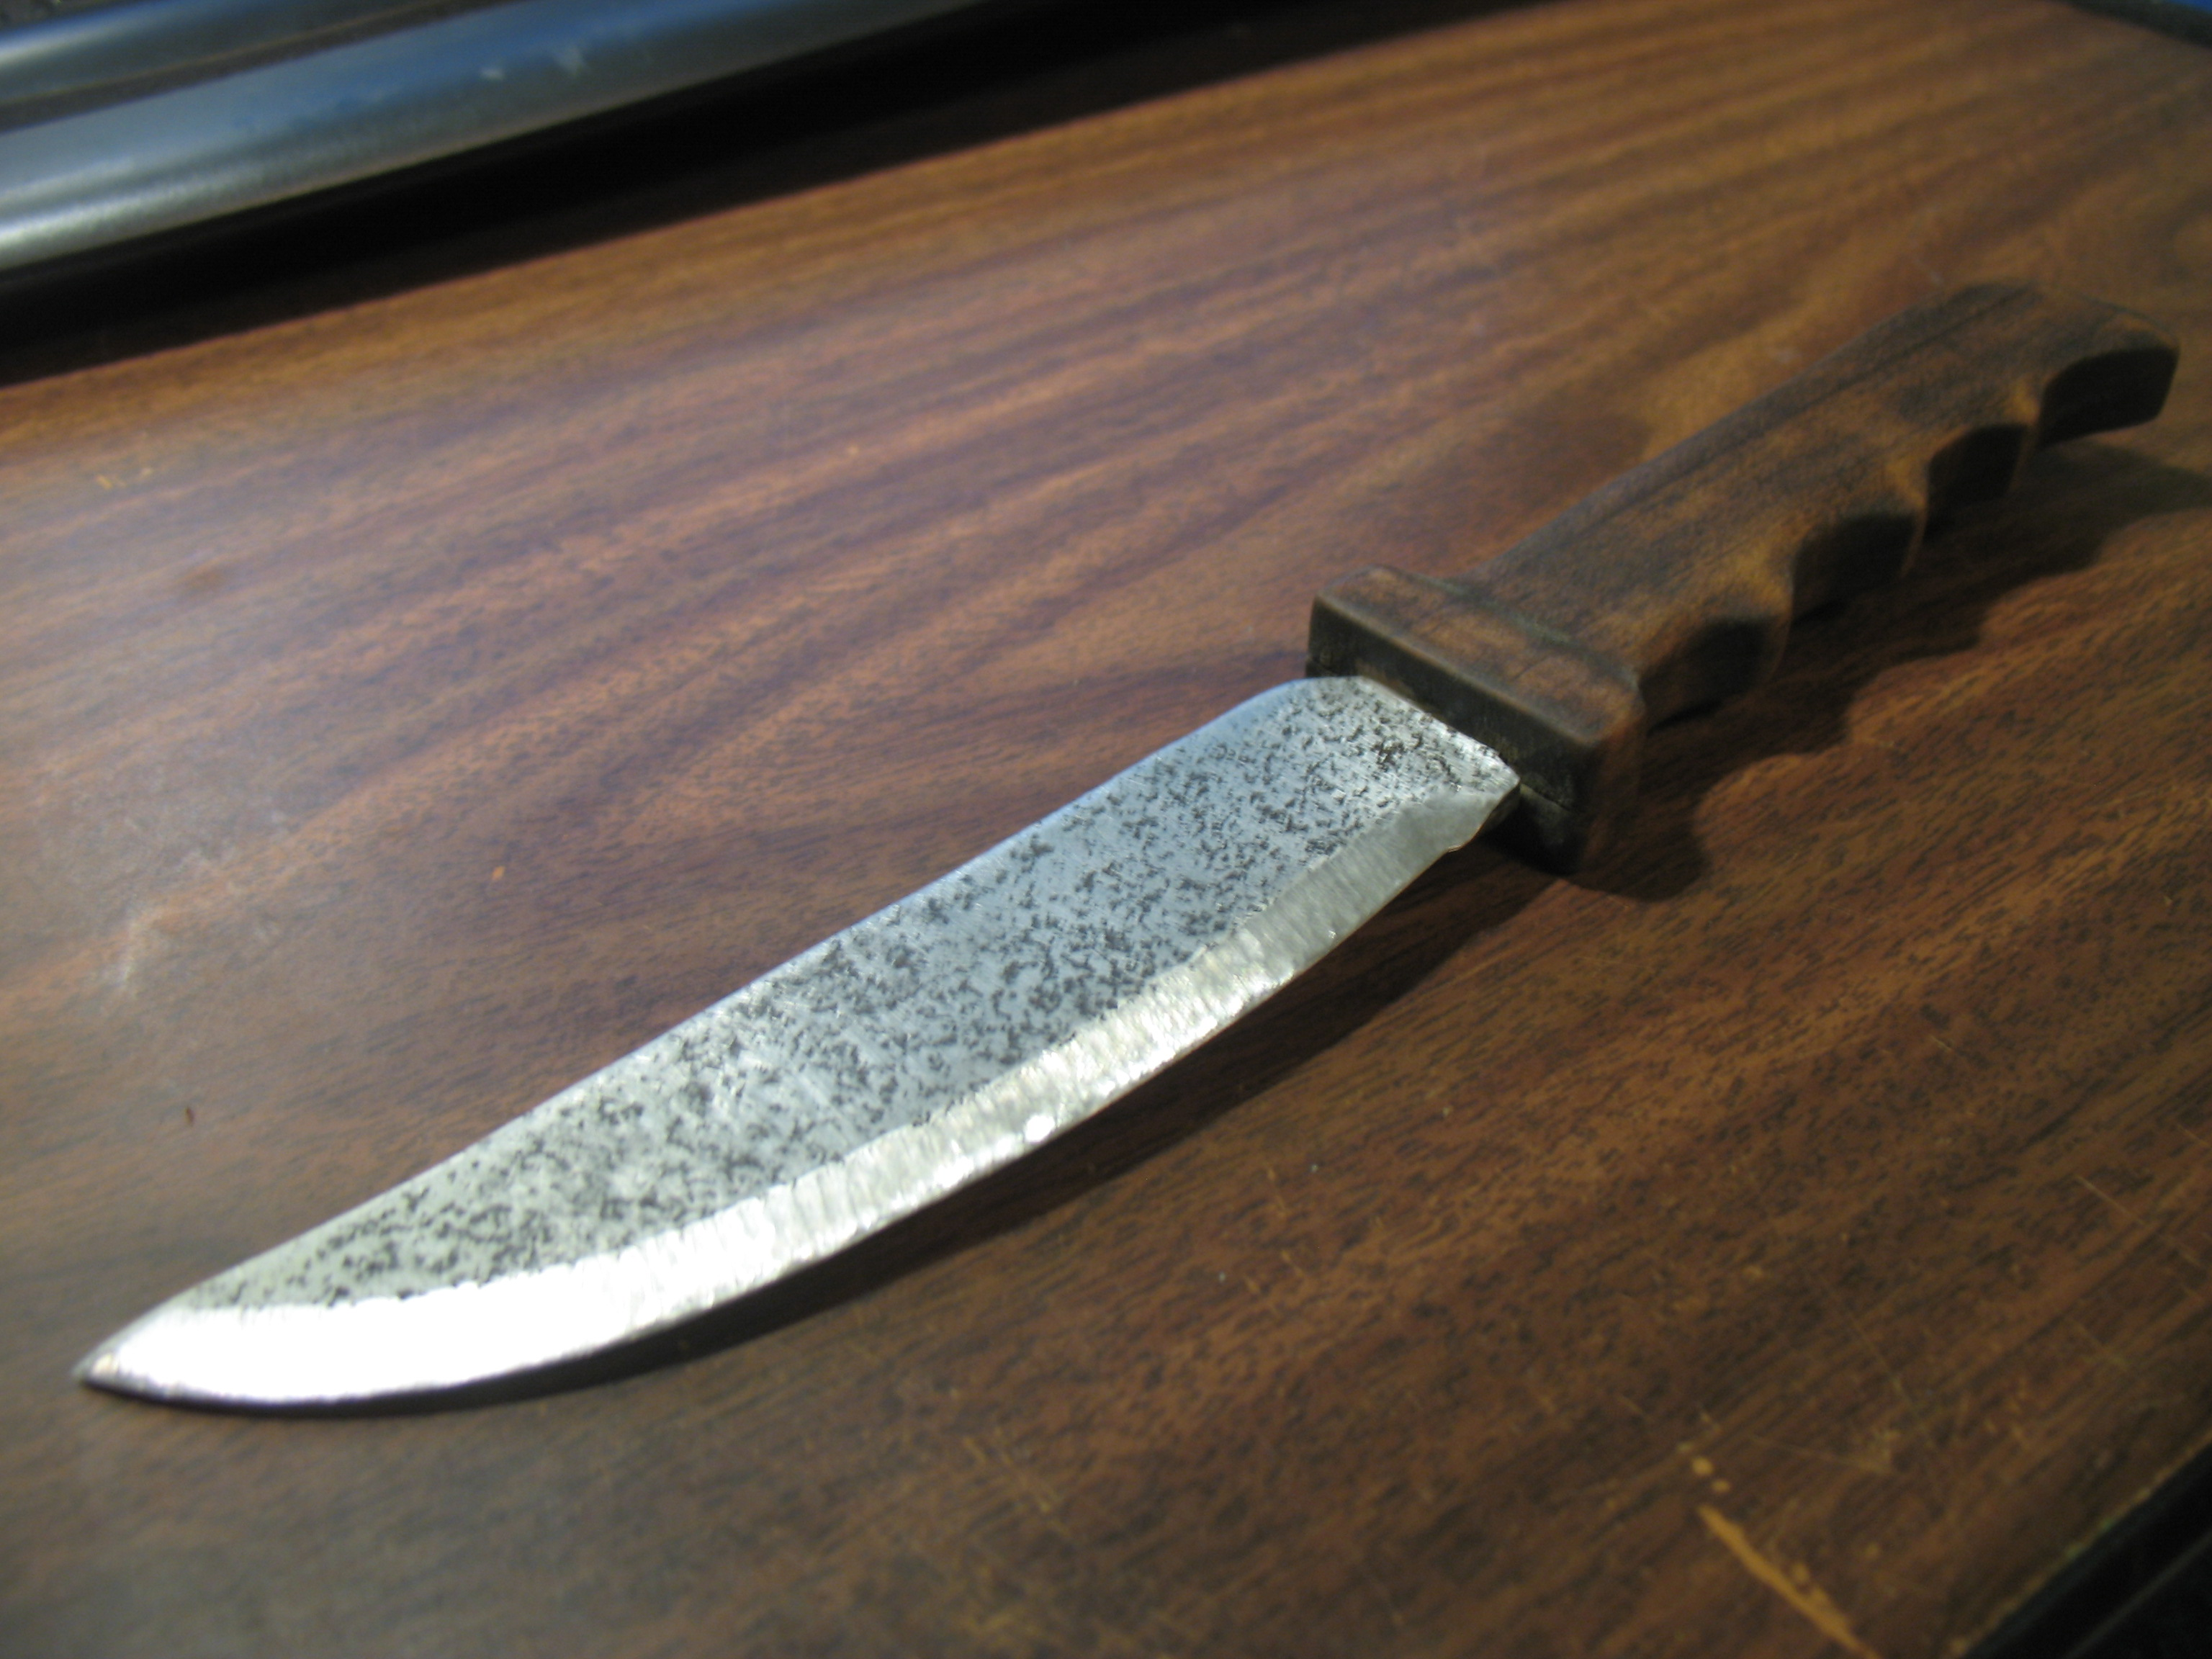 Homemade Steel Knife with Carved Handle